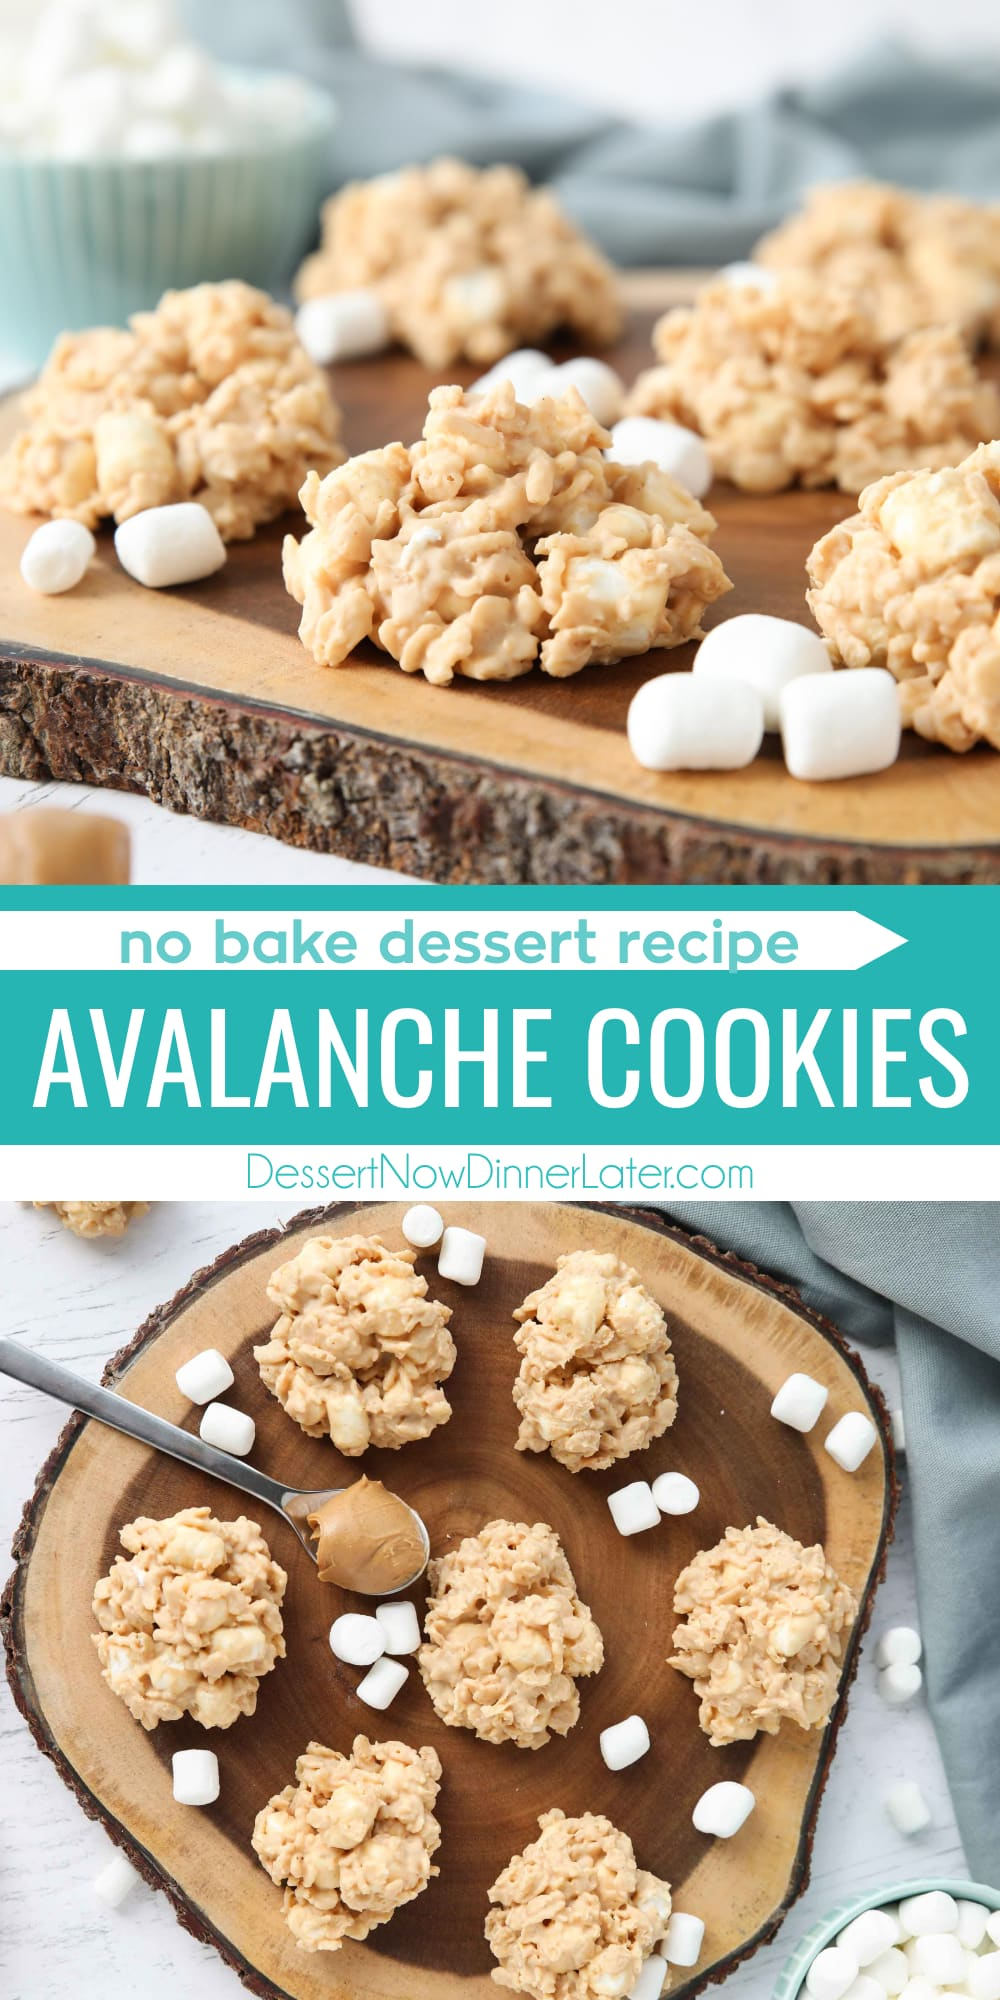 Pinterest collage image for Avalanche Cookies with two images and text in the center.